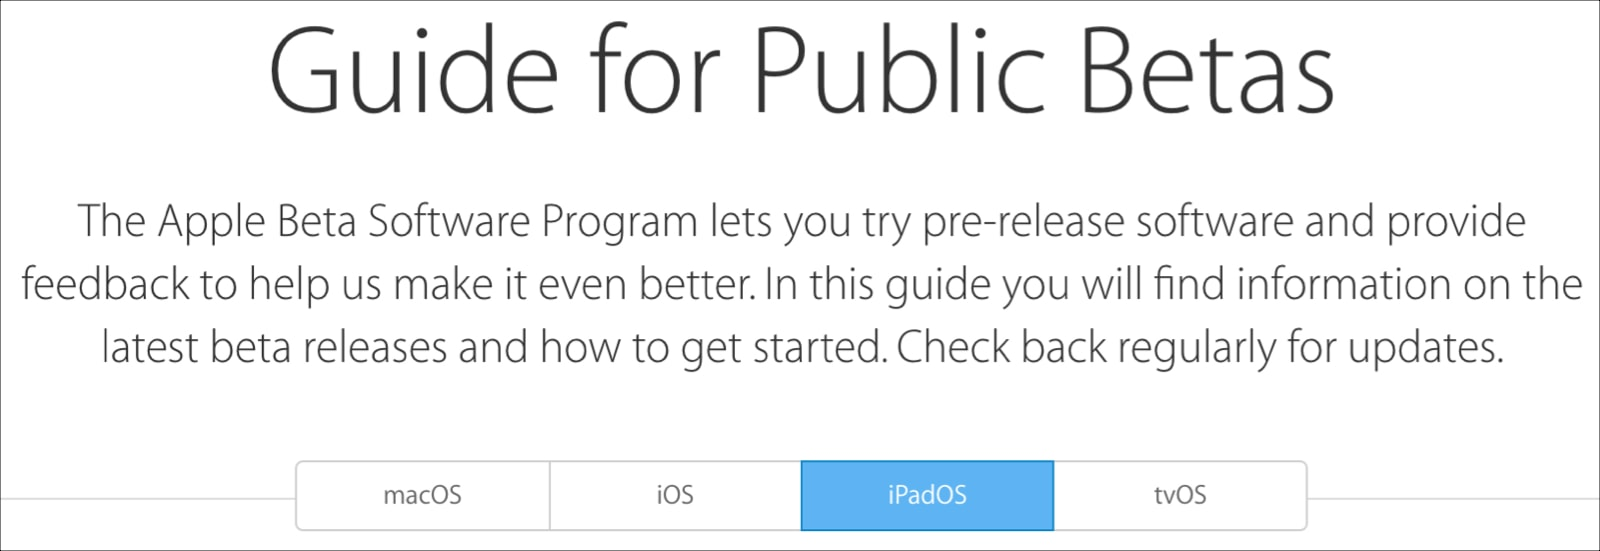 Apple Guide for Public Betas